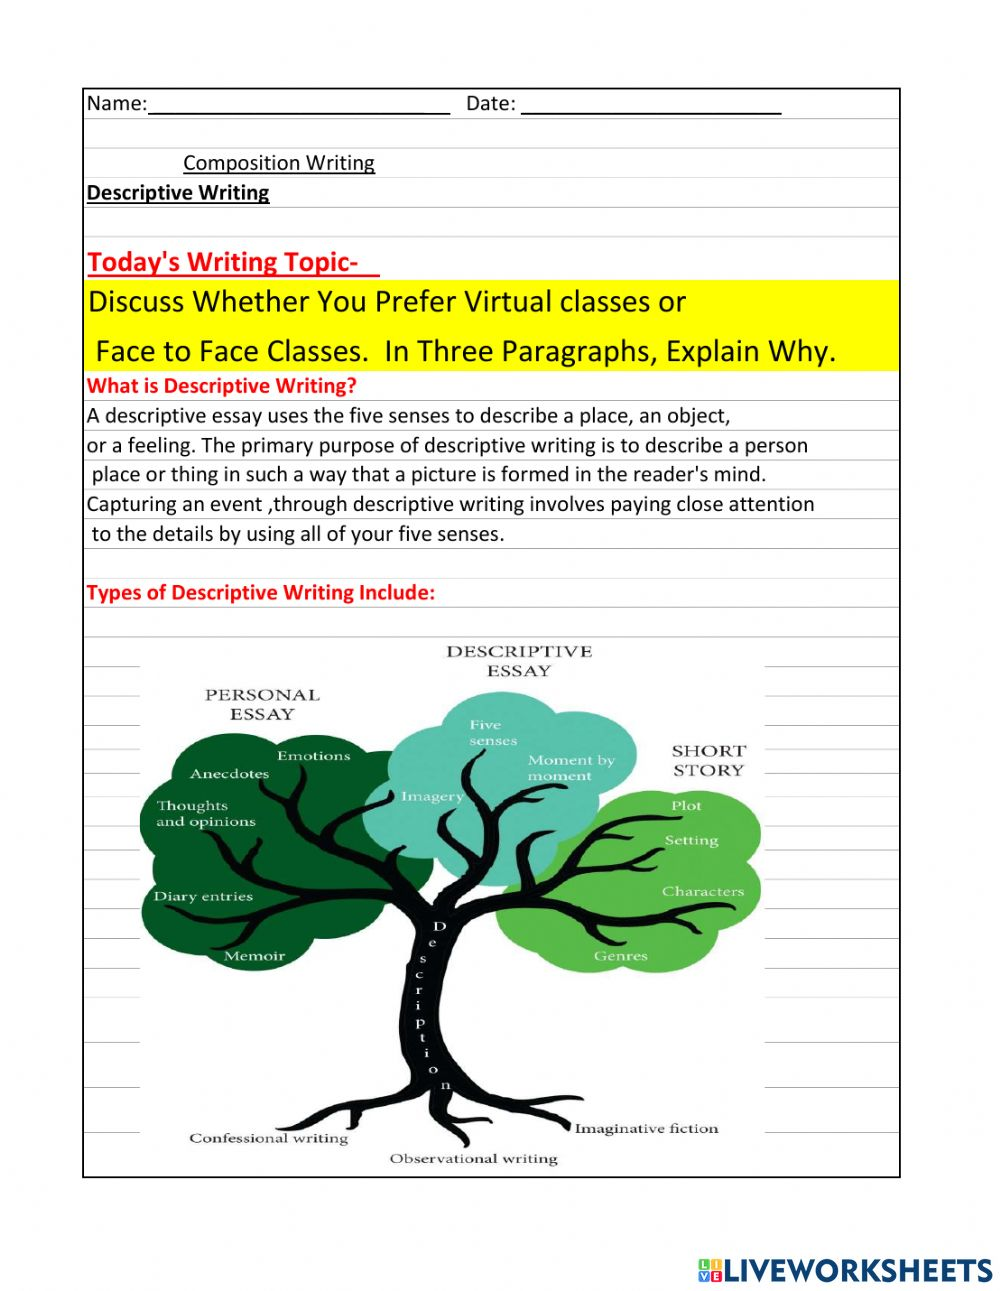 Full Size of Descriptive Writing Worksheet Success Essay Diversity Example Of Easy Photo Free